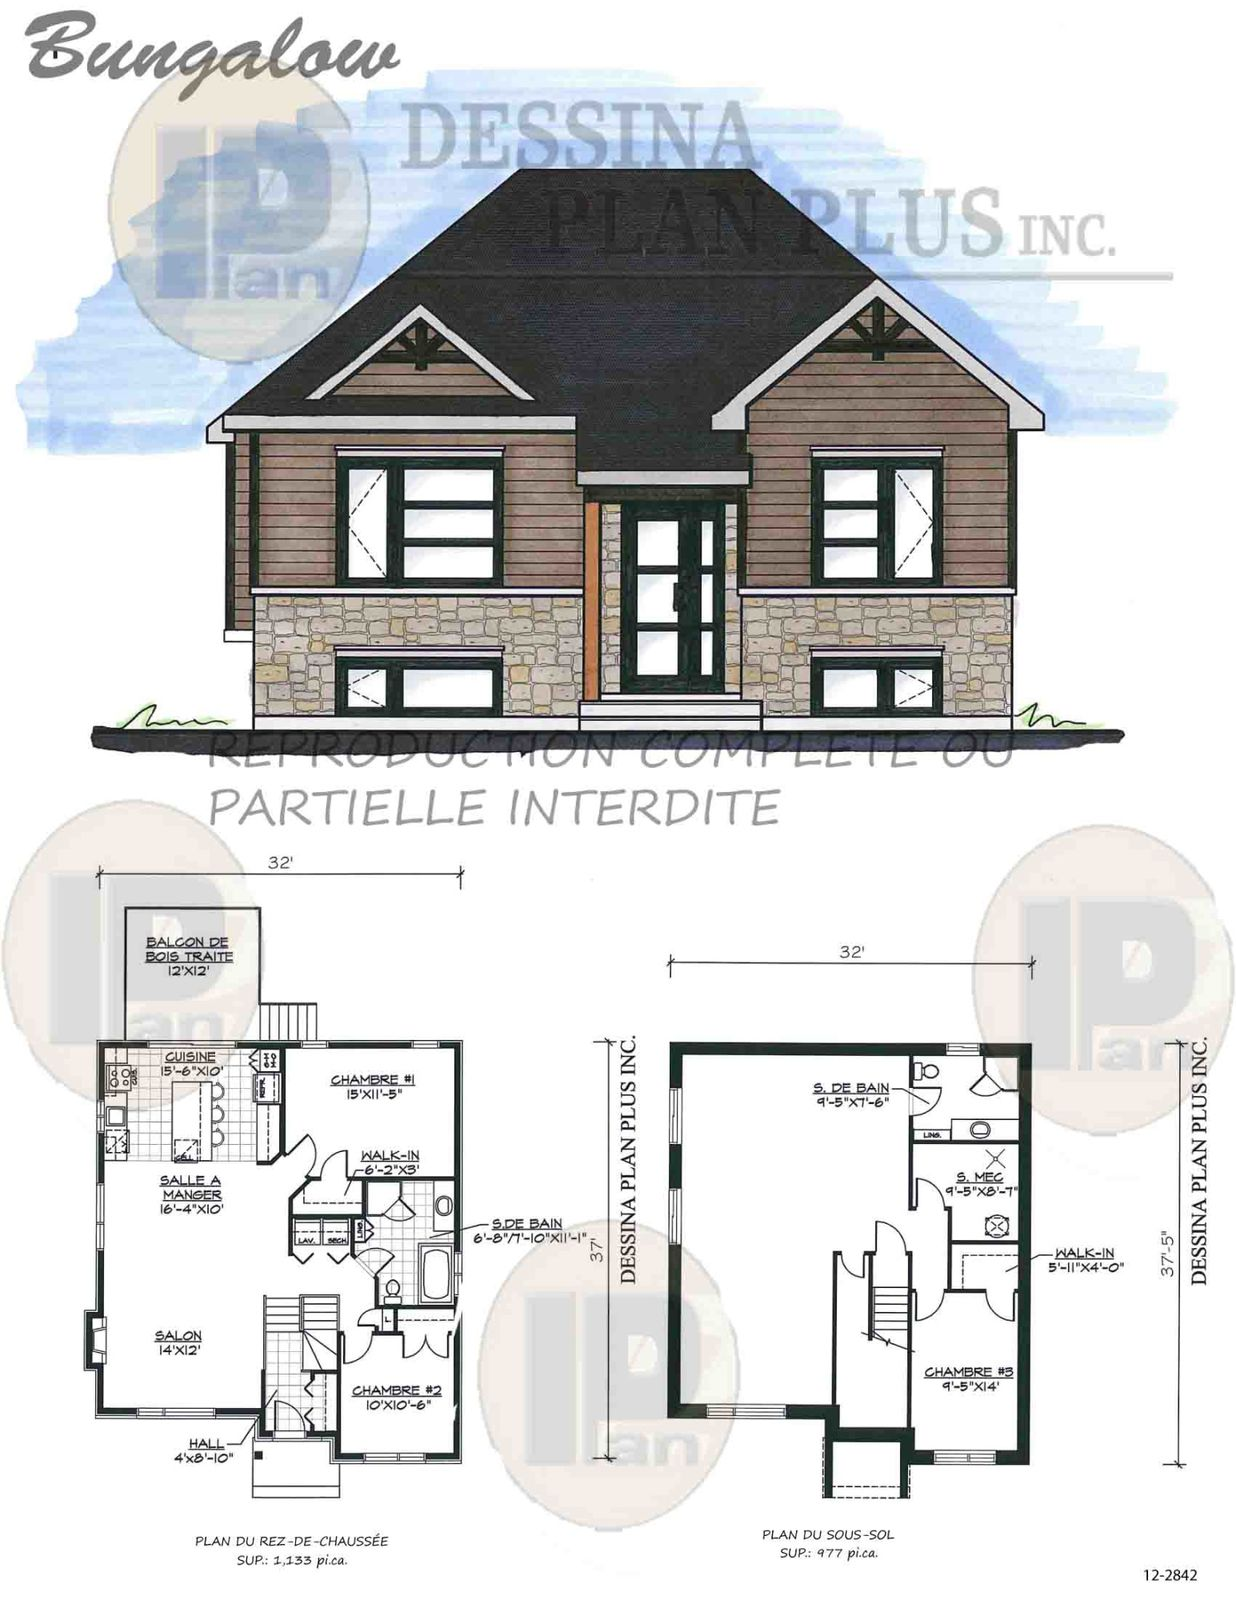 Plans vendre bungalow dessina plan plus inc for Architecture de maison gratuit